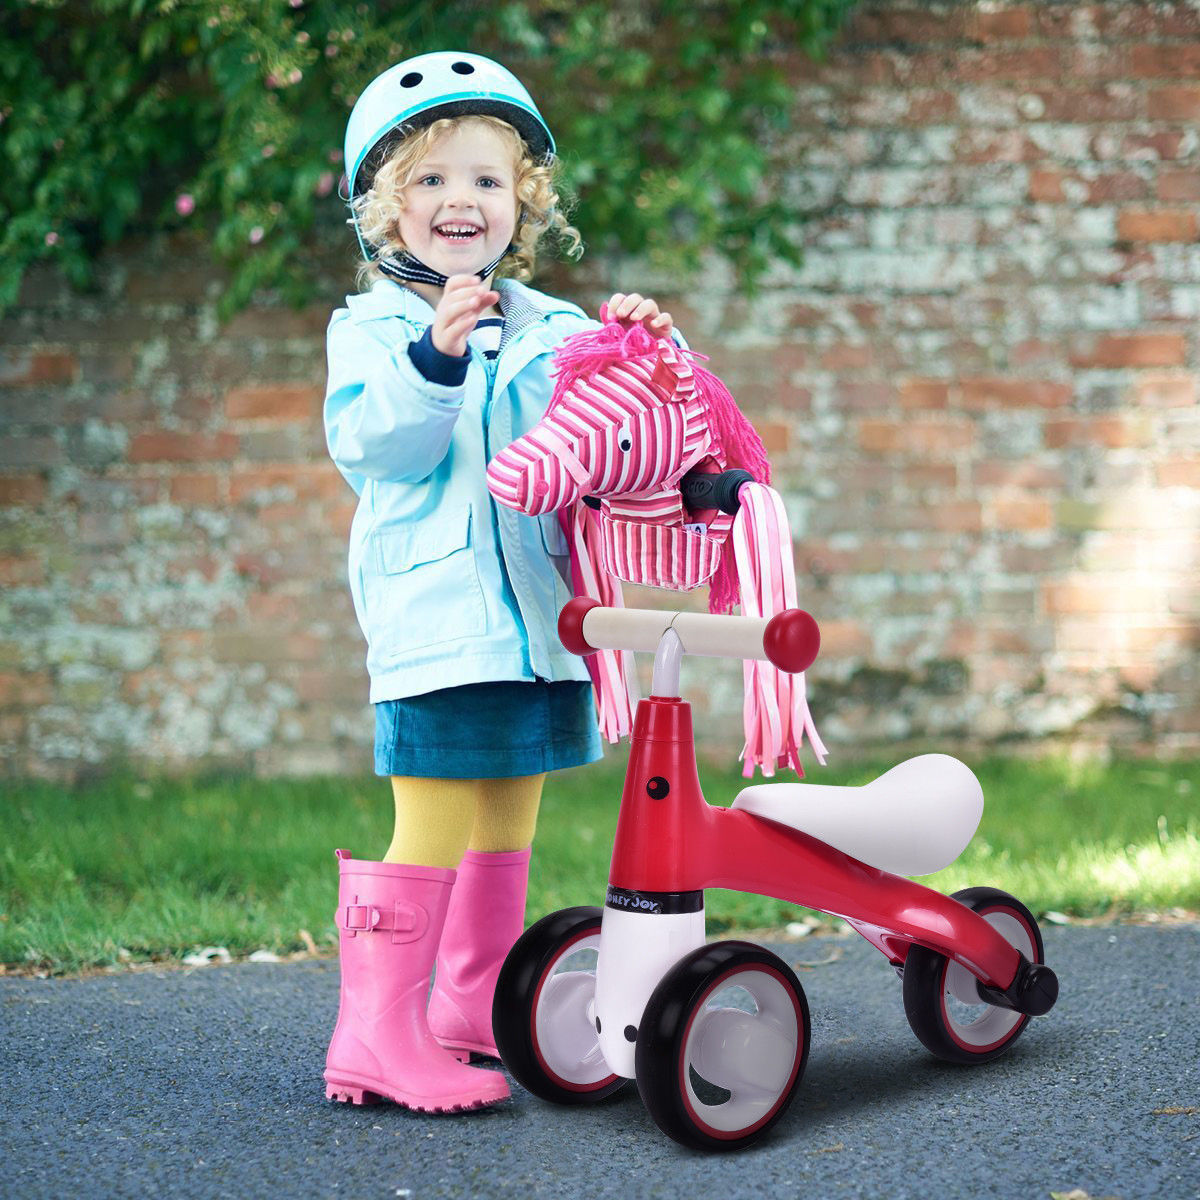 Costway Kids Balance Bike Baby Ride On Toy Learn To Walk Trainer No-Pedal Christmas Gift